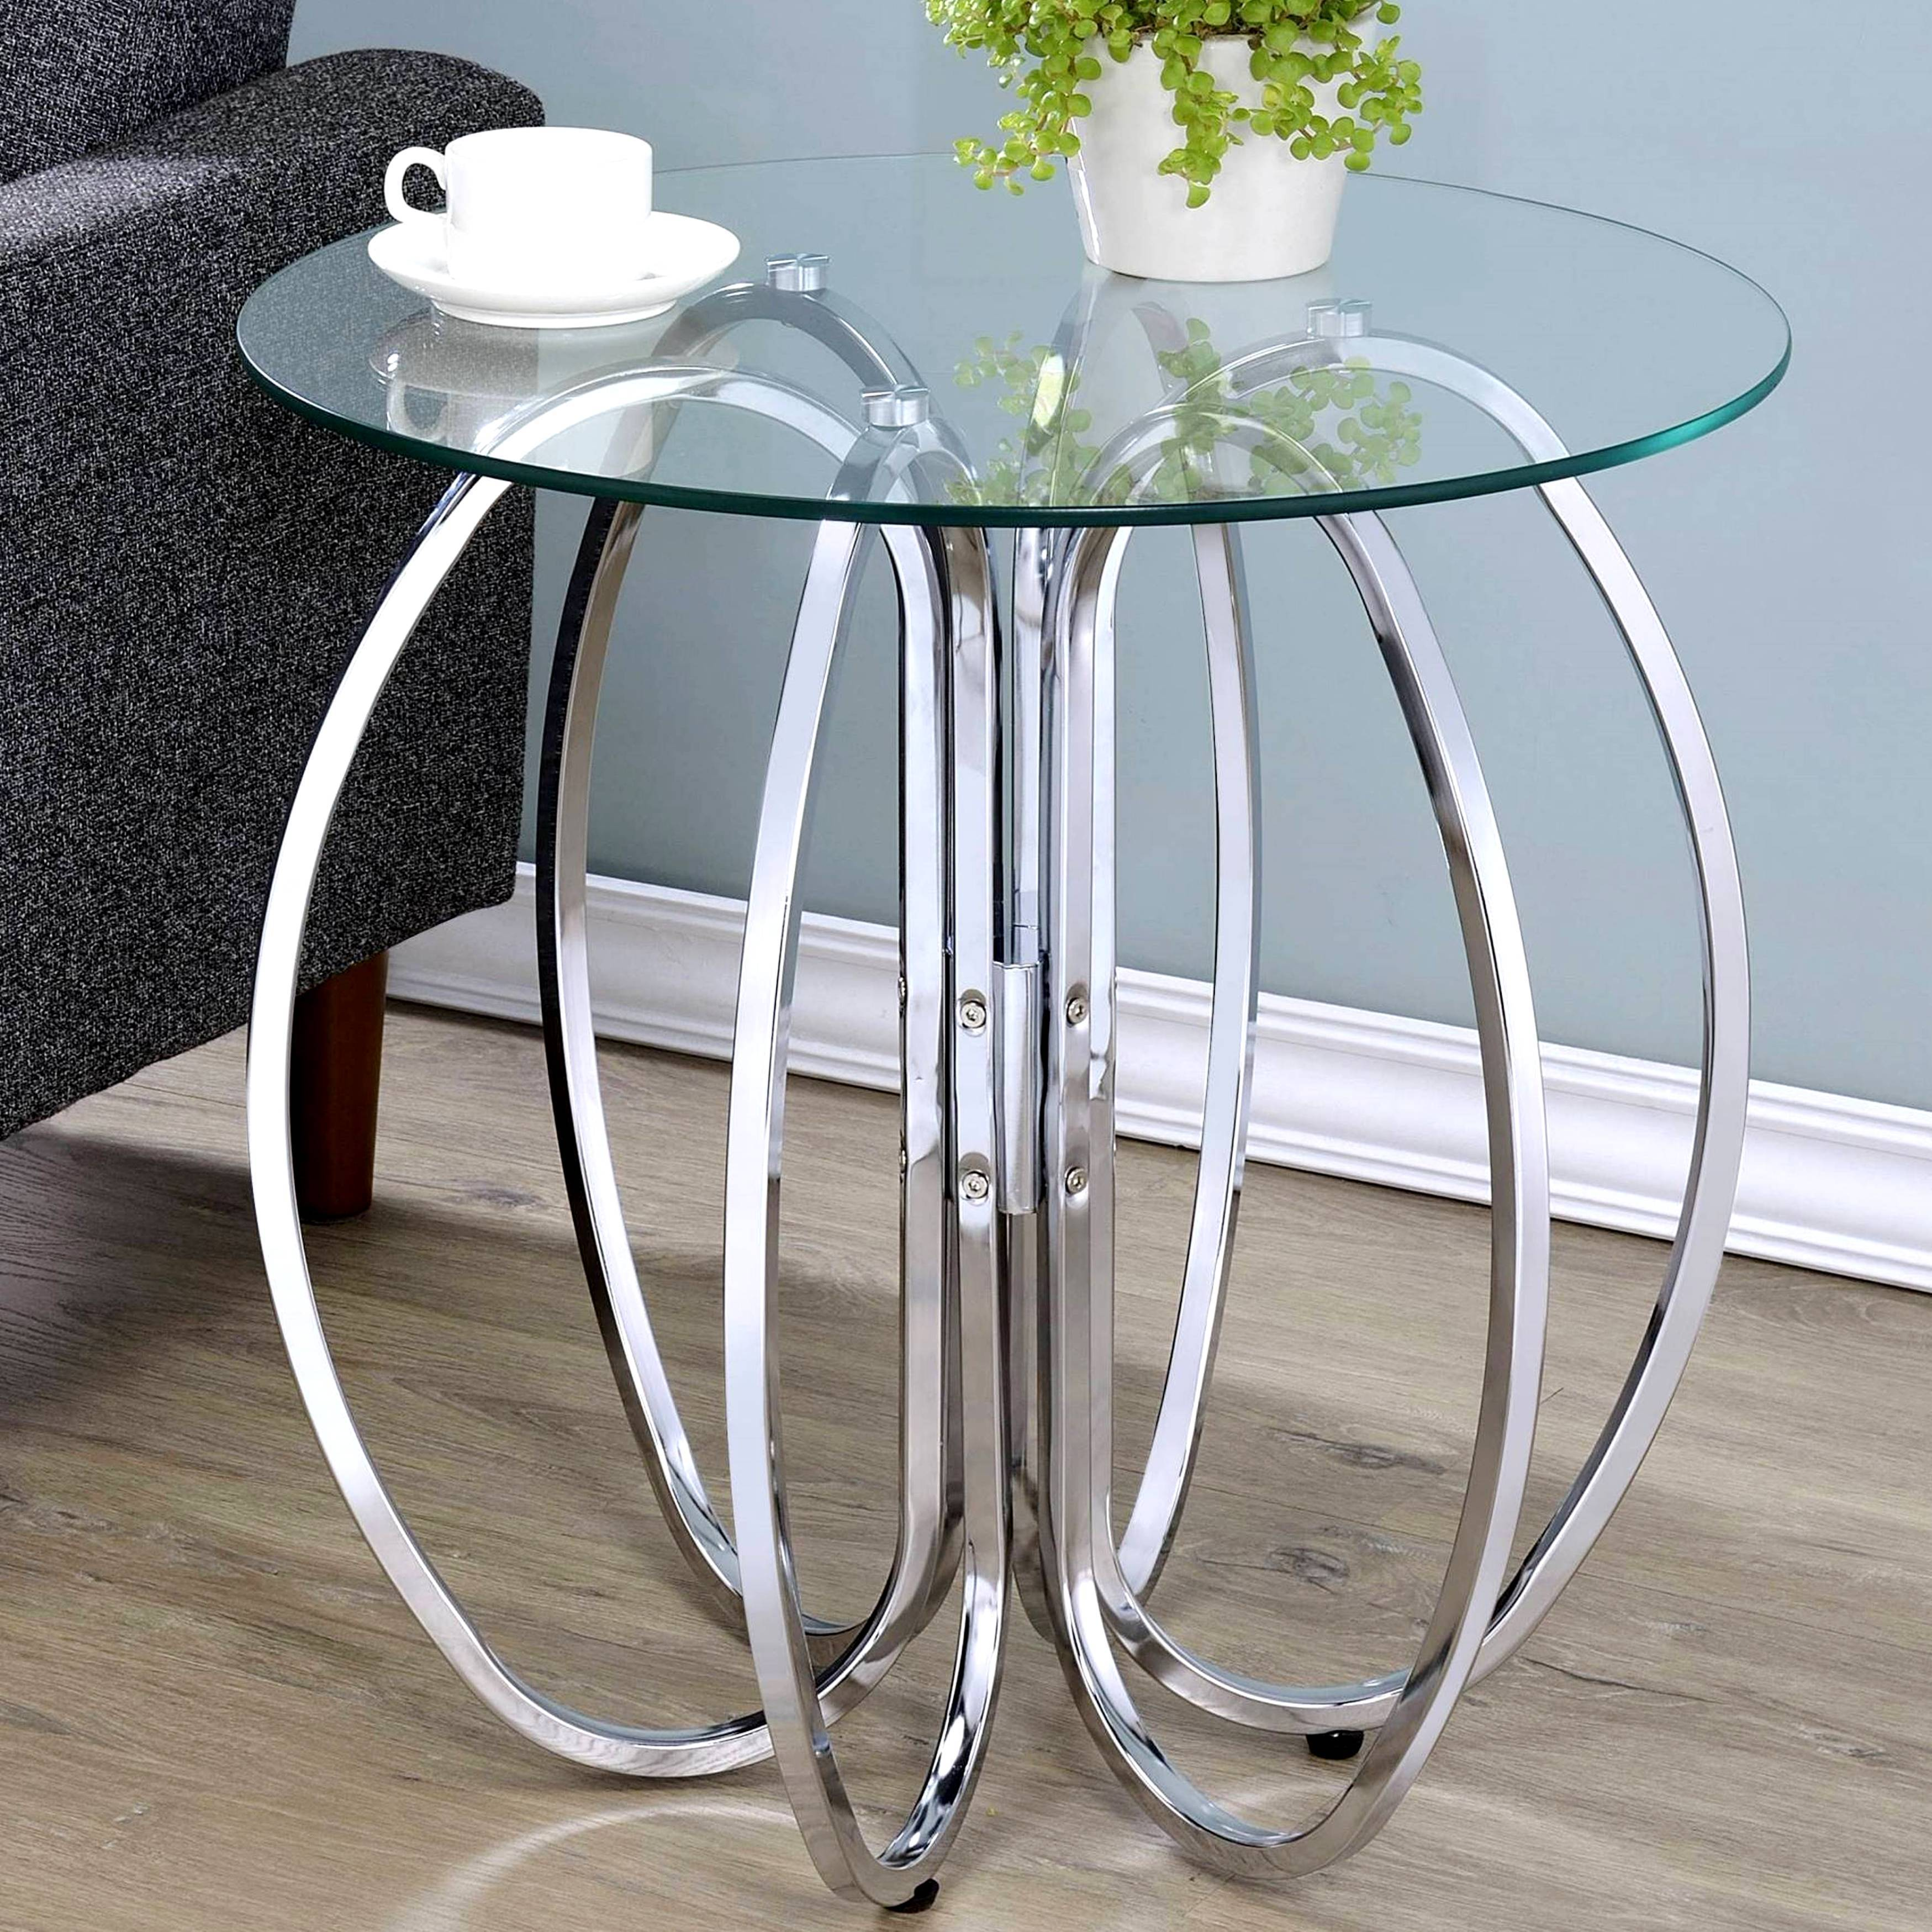 glamorous chrome finish uniquely crafted accent table with glass top simplify oval free shipping today metal garden modern lounge large umbrella stand hayworth furniture target